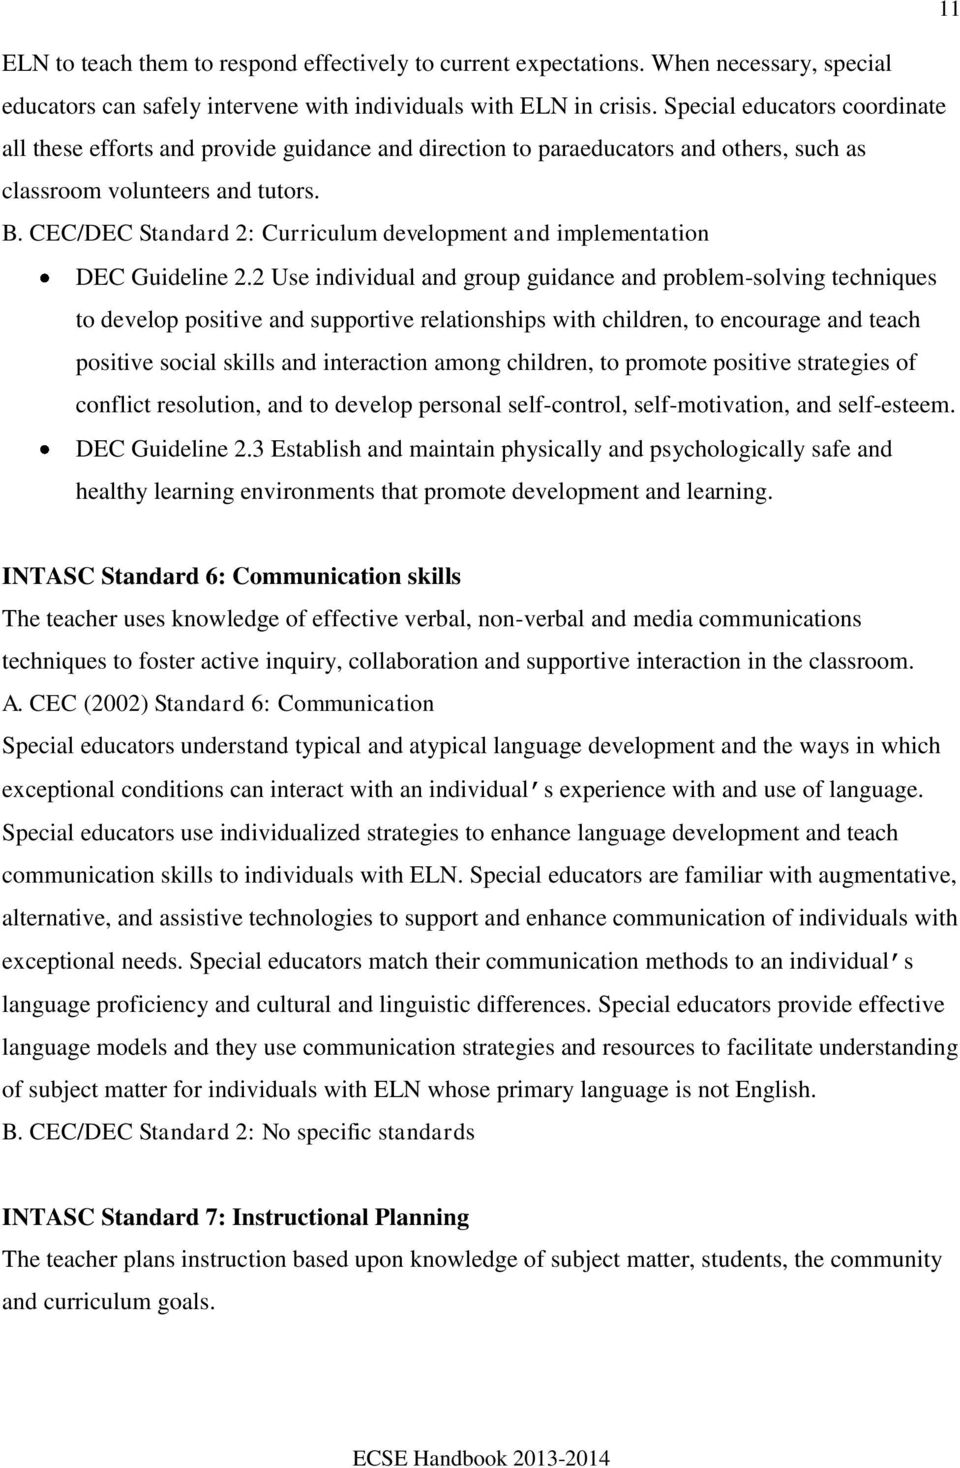 CEC/DEC Standard 2: Curriculum development and implementation DEC Guideline 2.